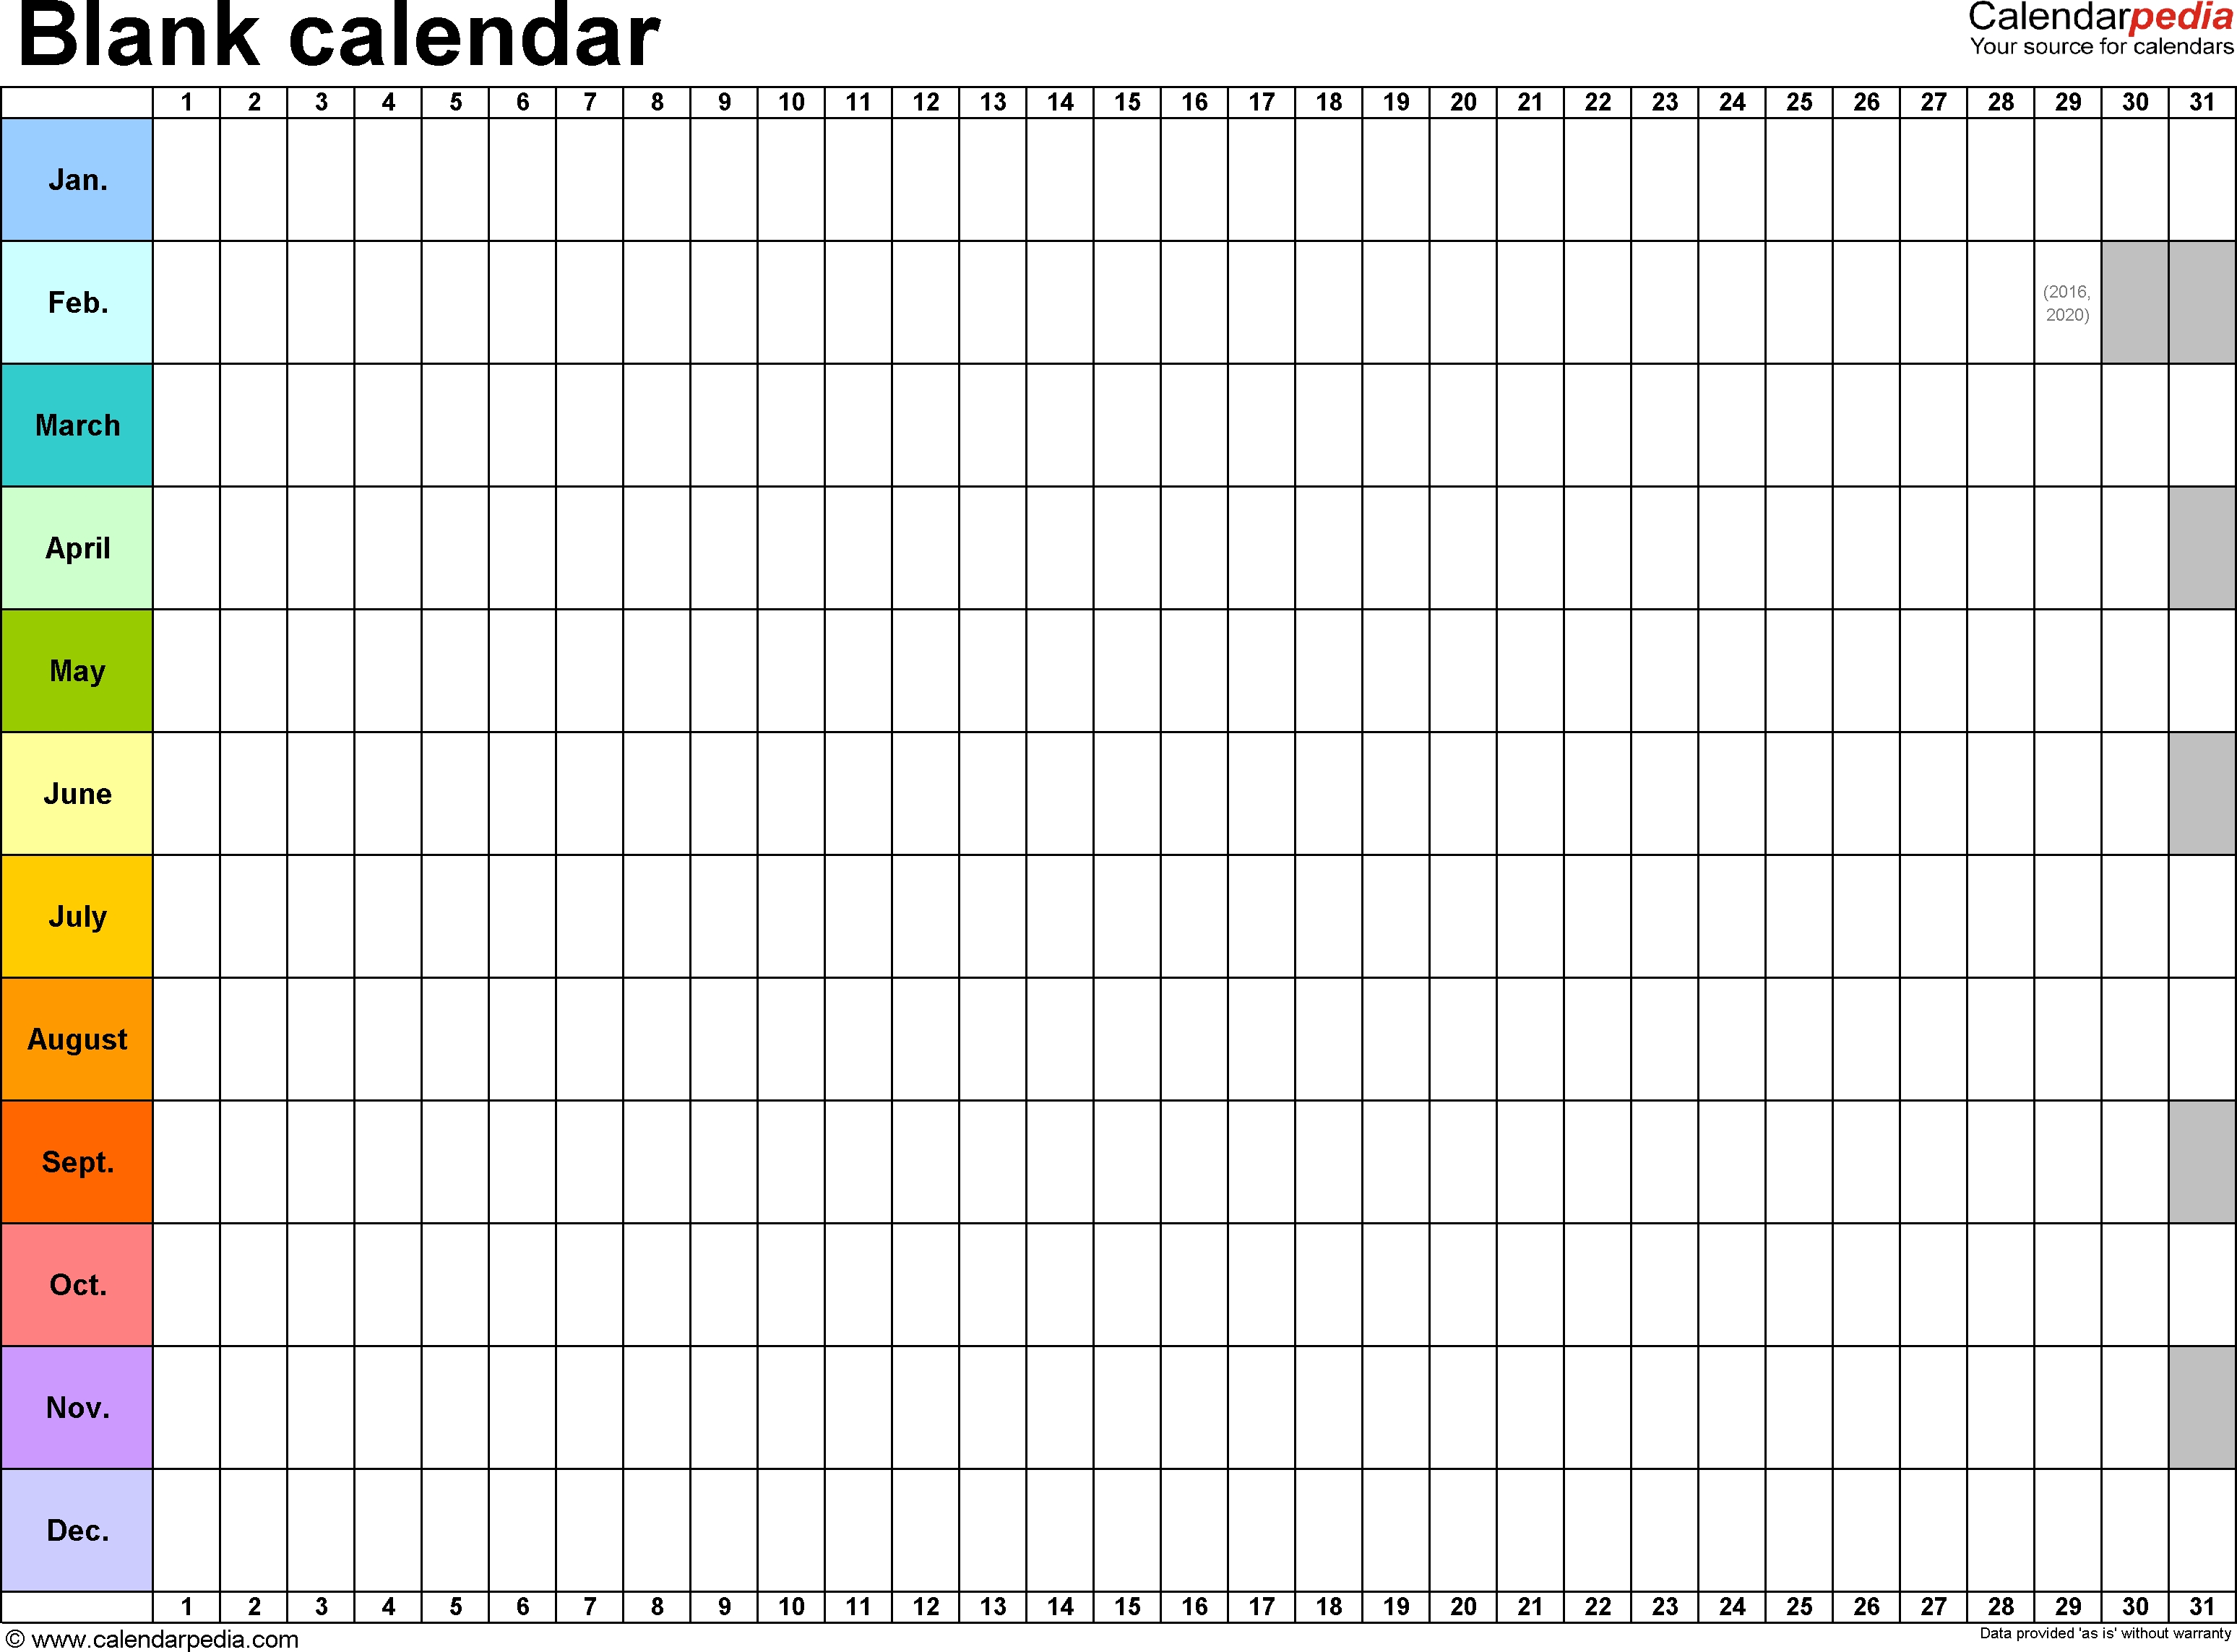 Blank Calendar - 9 Free Printable Microsoft Word Templates with Free 30 Day Calendar Printable